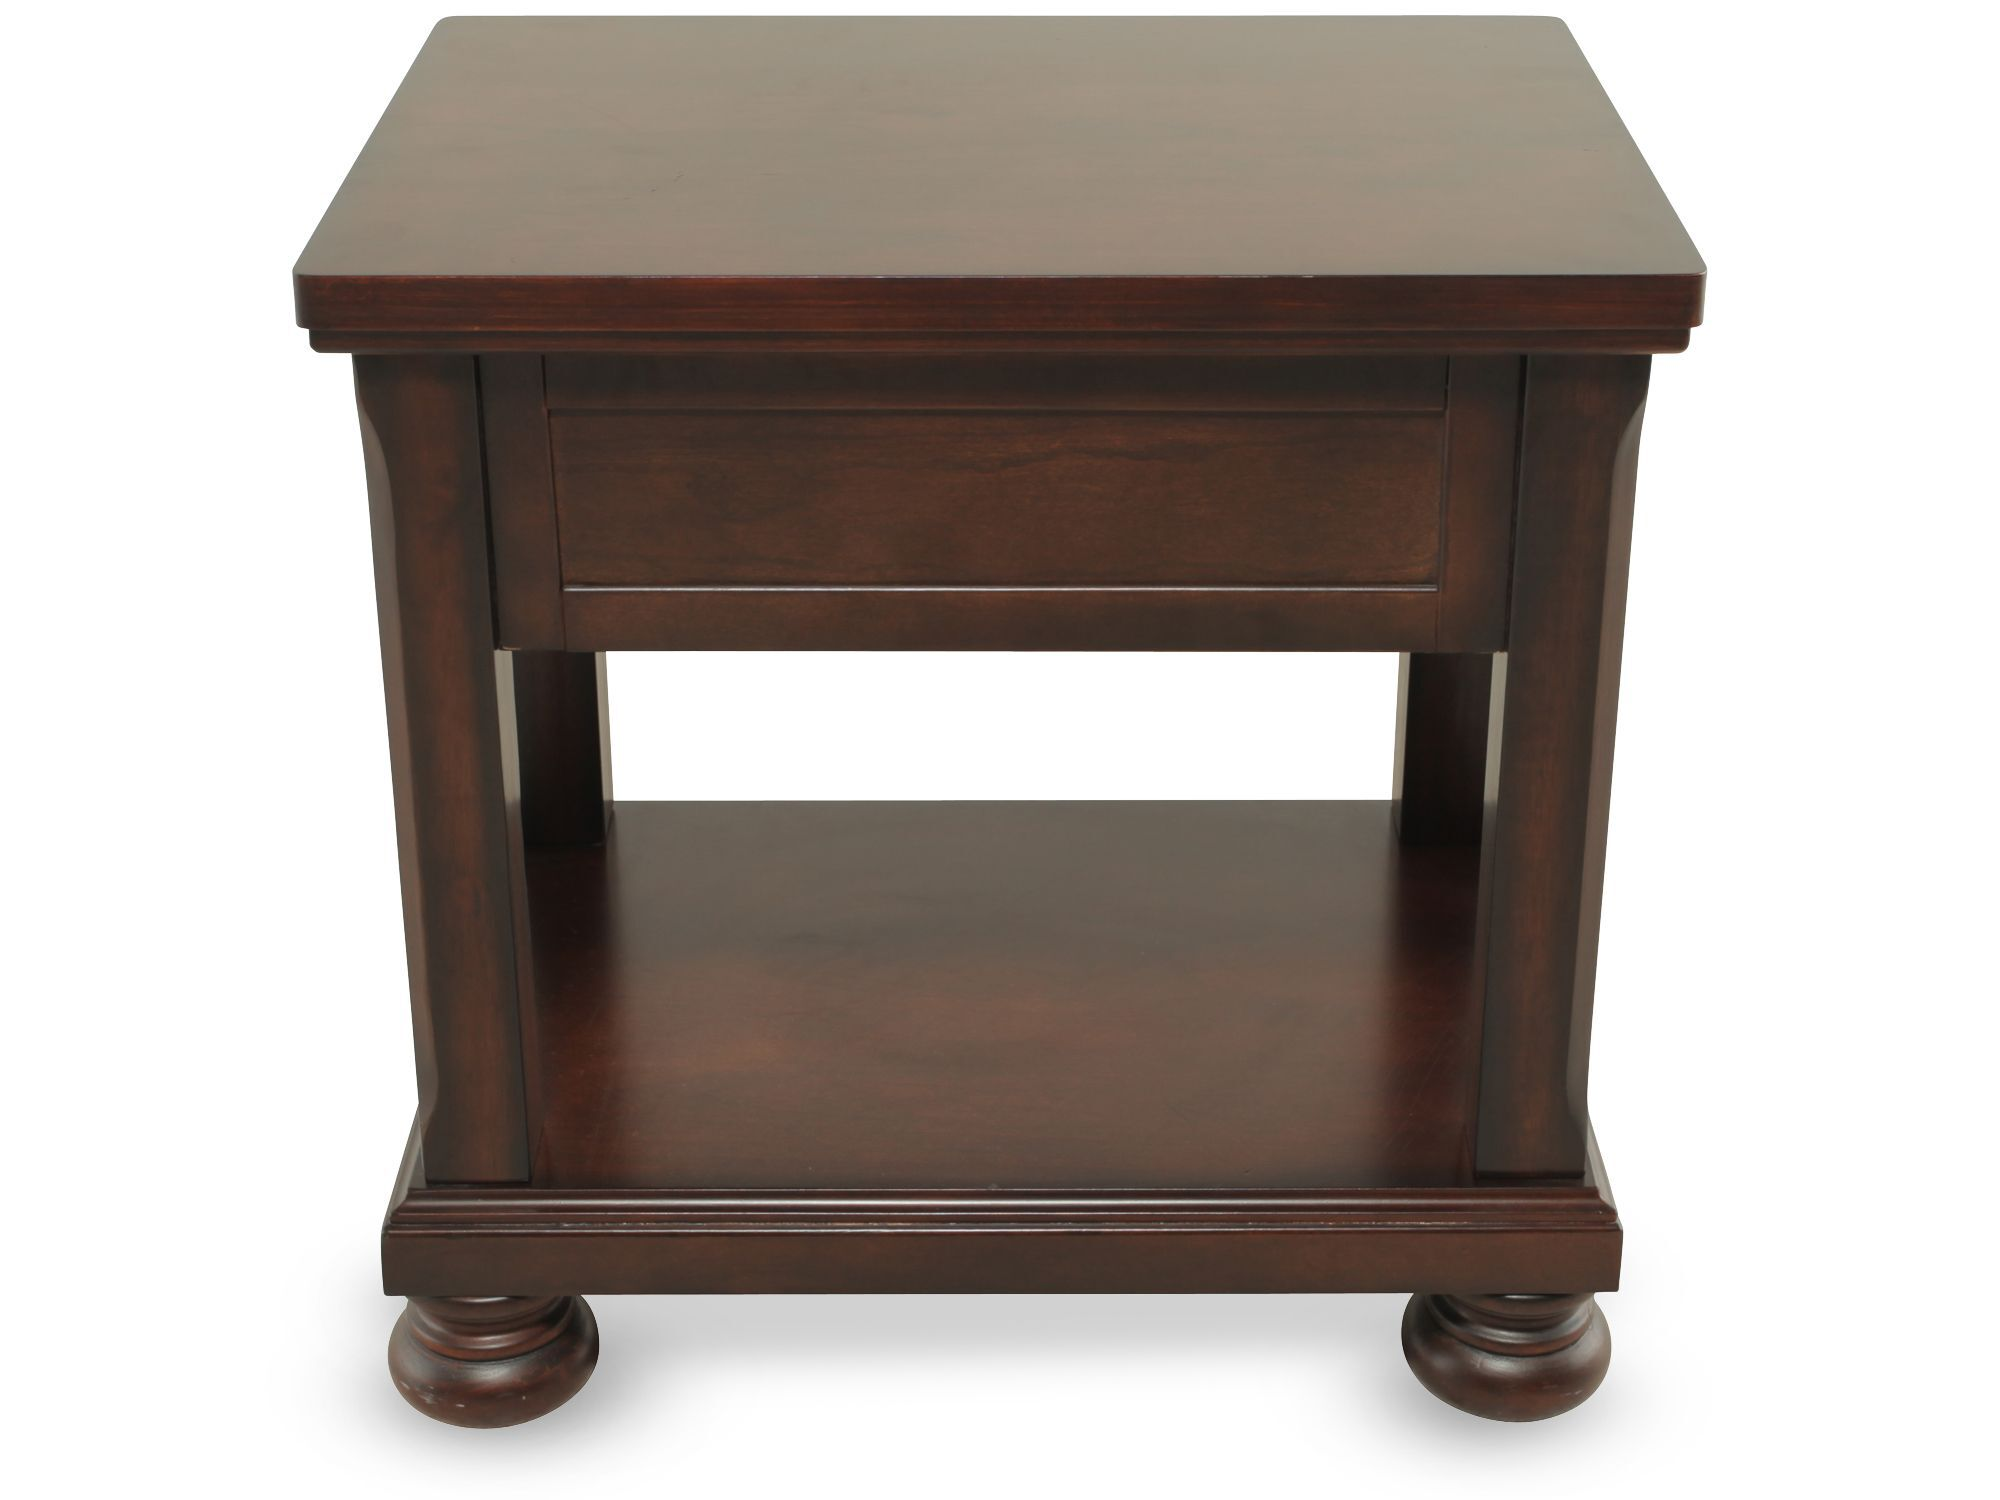 Rectangular One-Drawer Traditional End Table In Brown